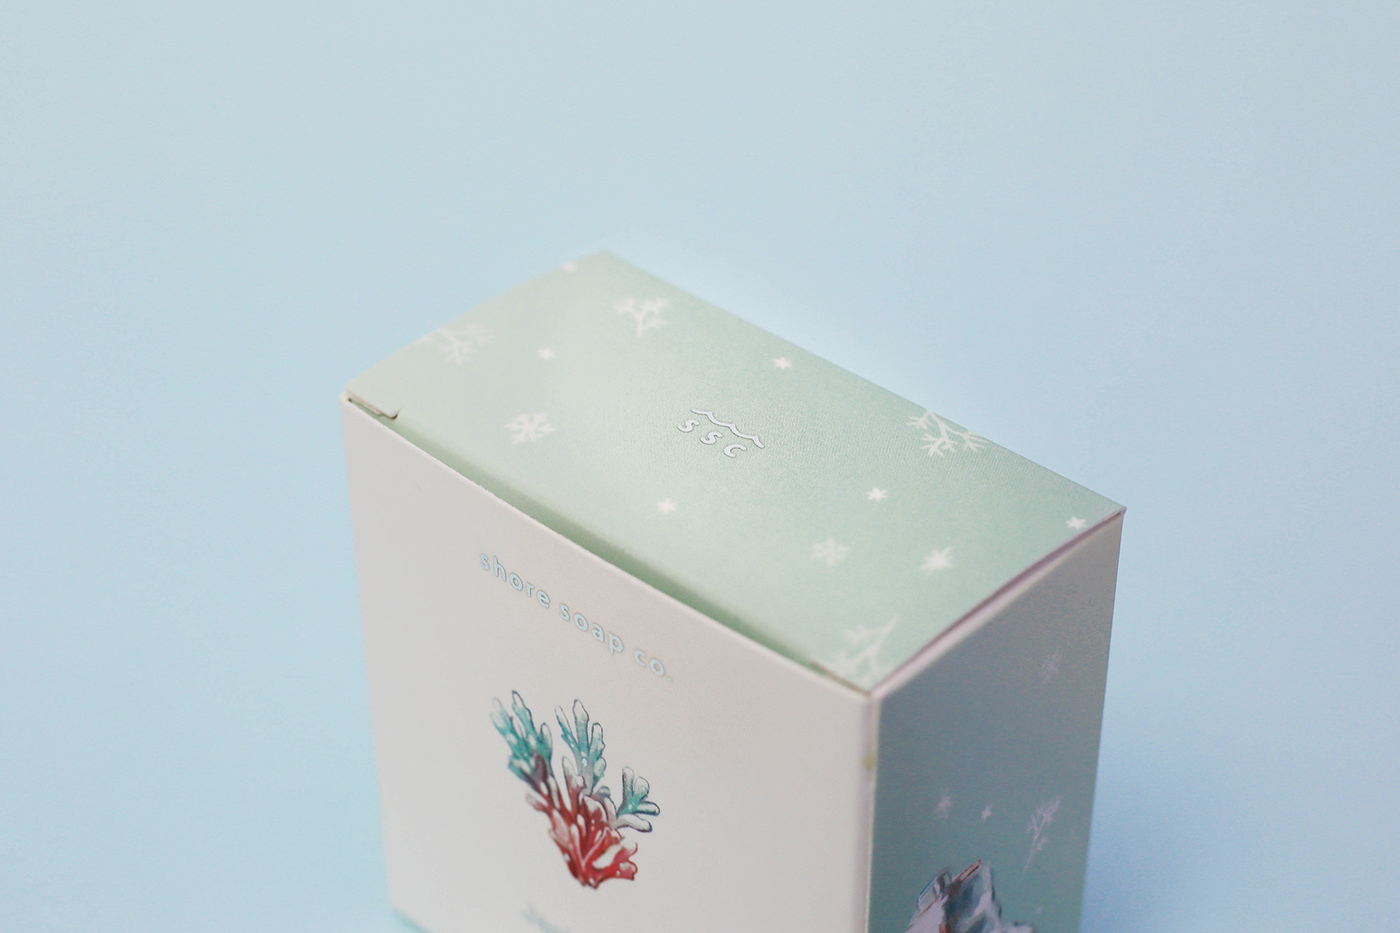 soap coral Ocean sea Cosmetic silver foil winter special edition Christmas soap packaging